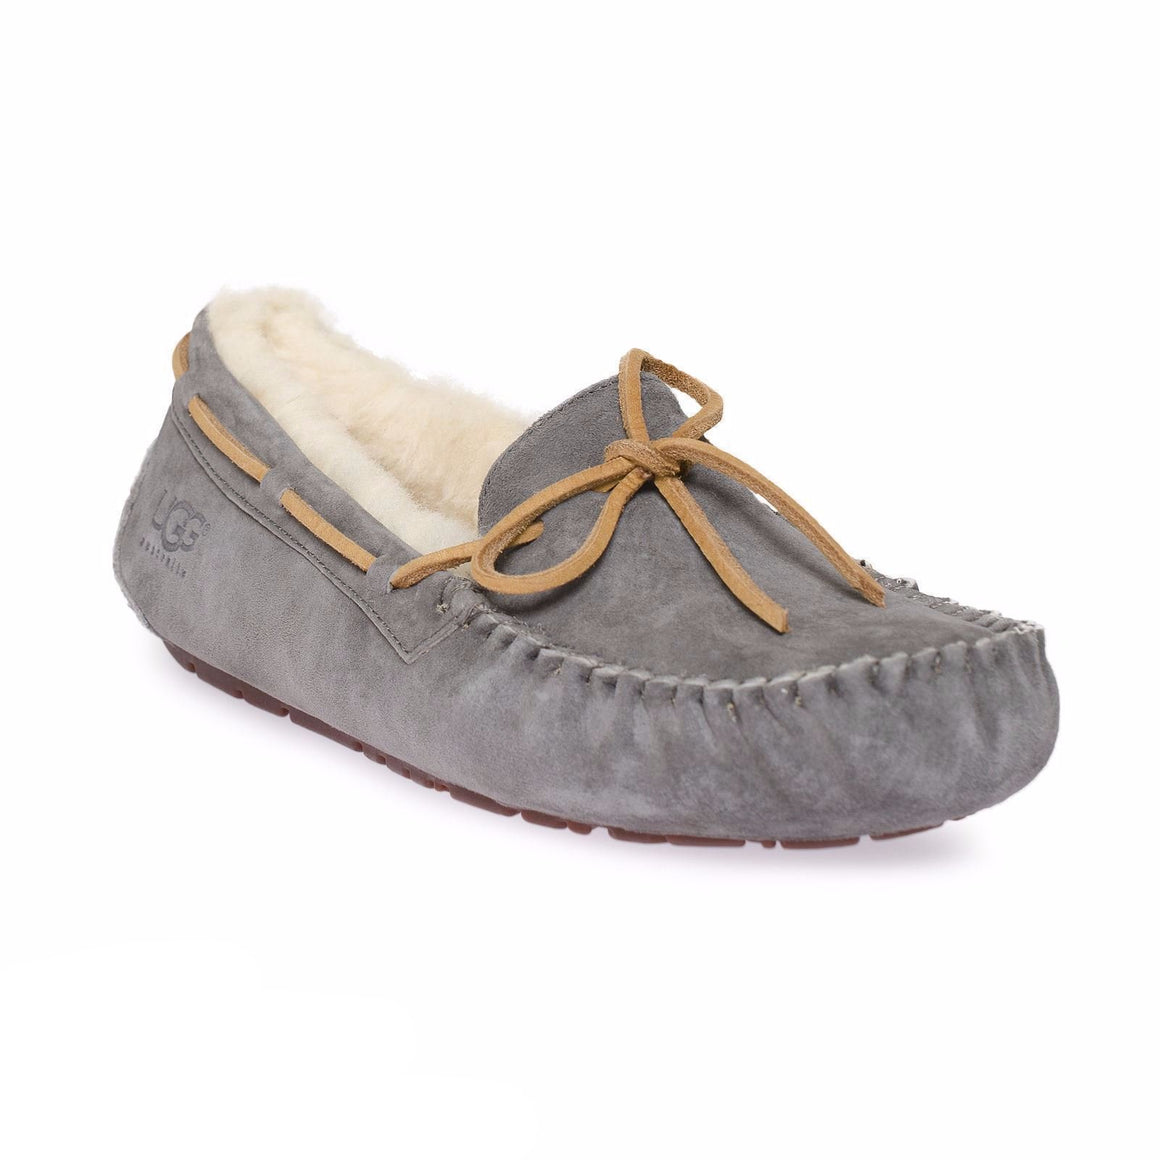 UGG Dakota Pewter Slippers